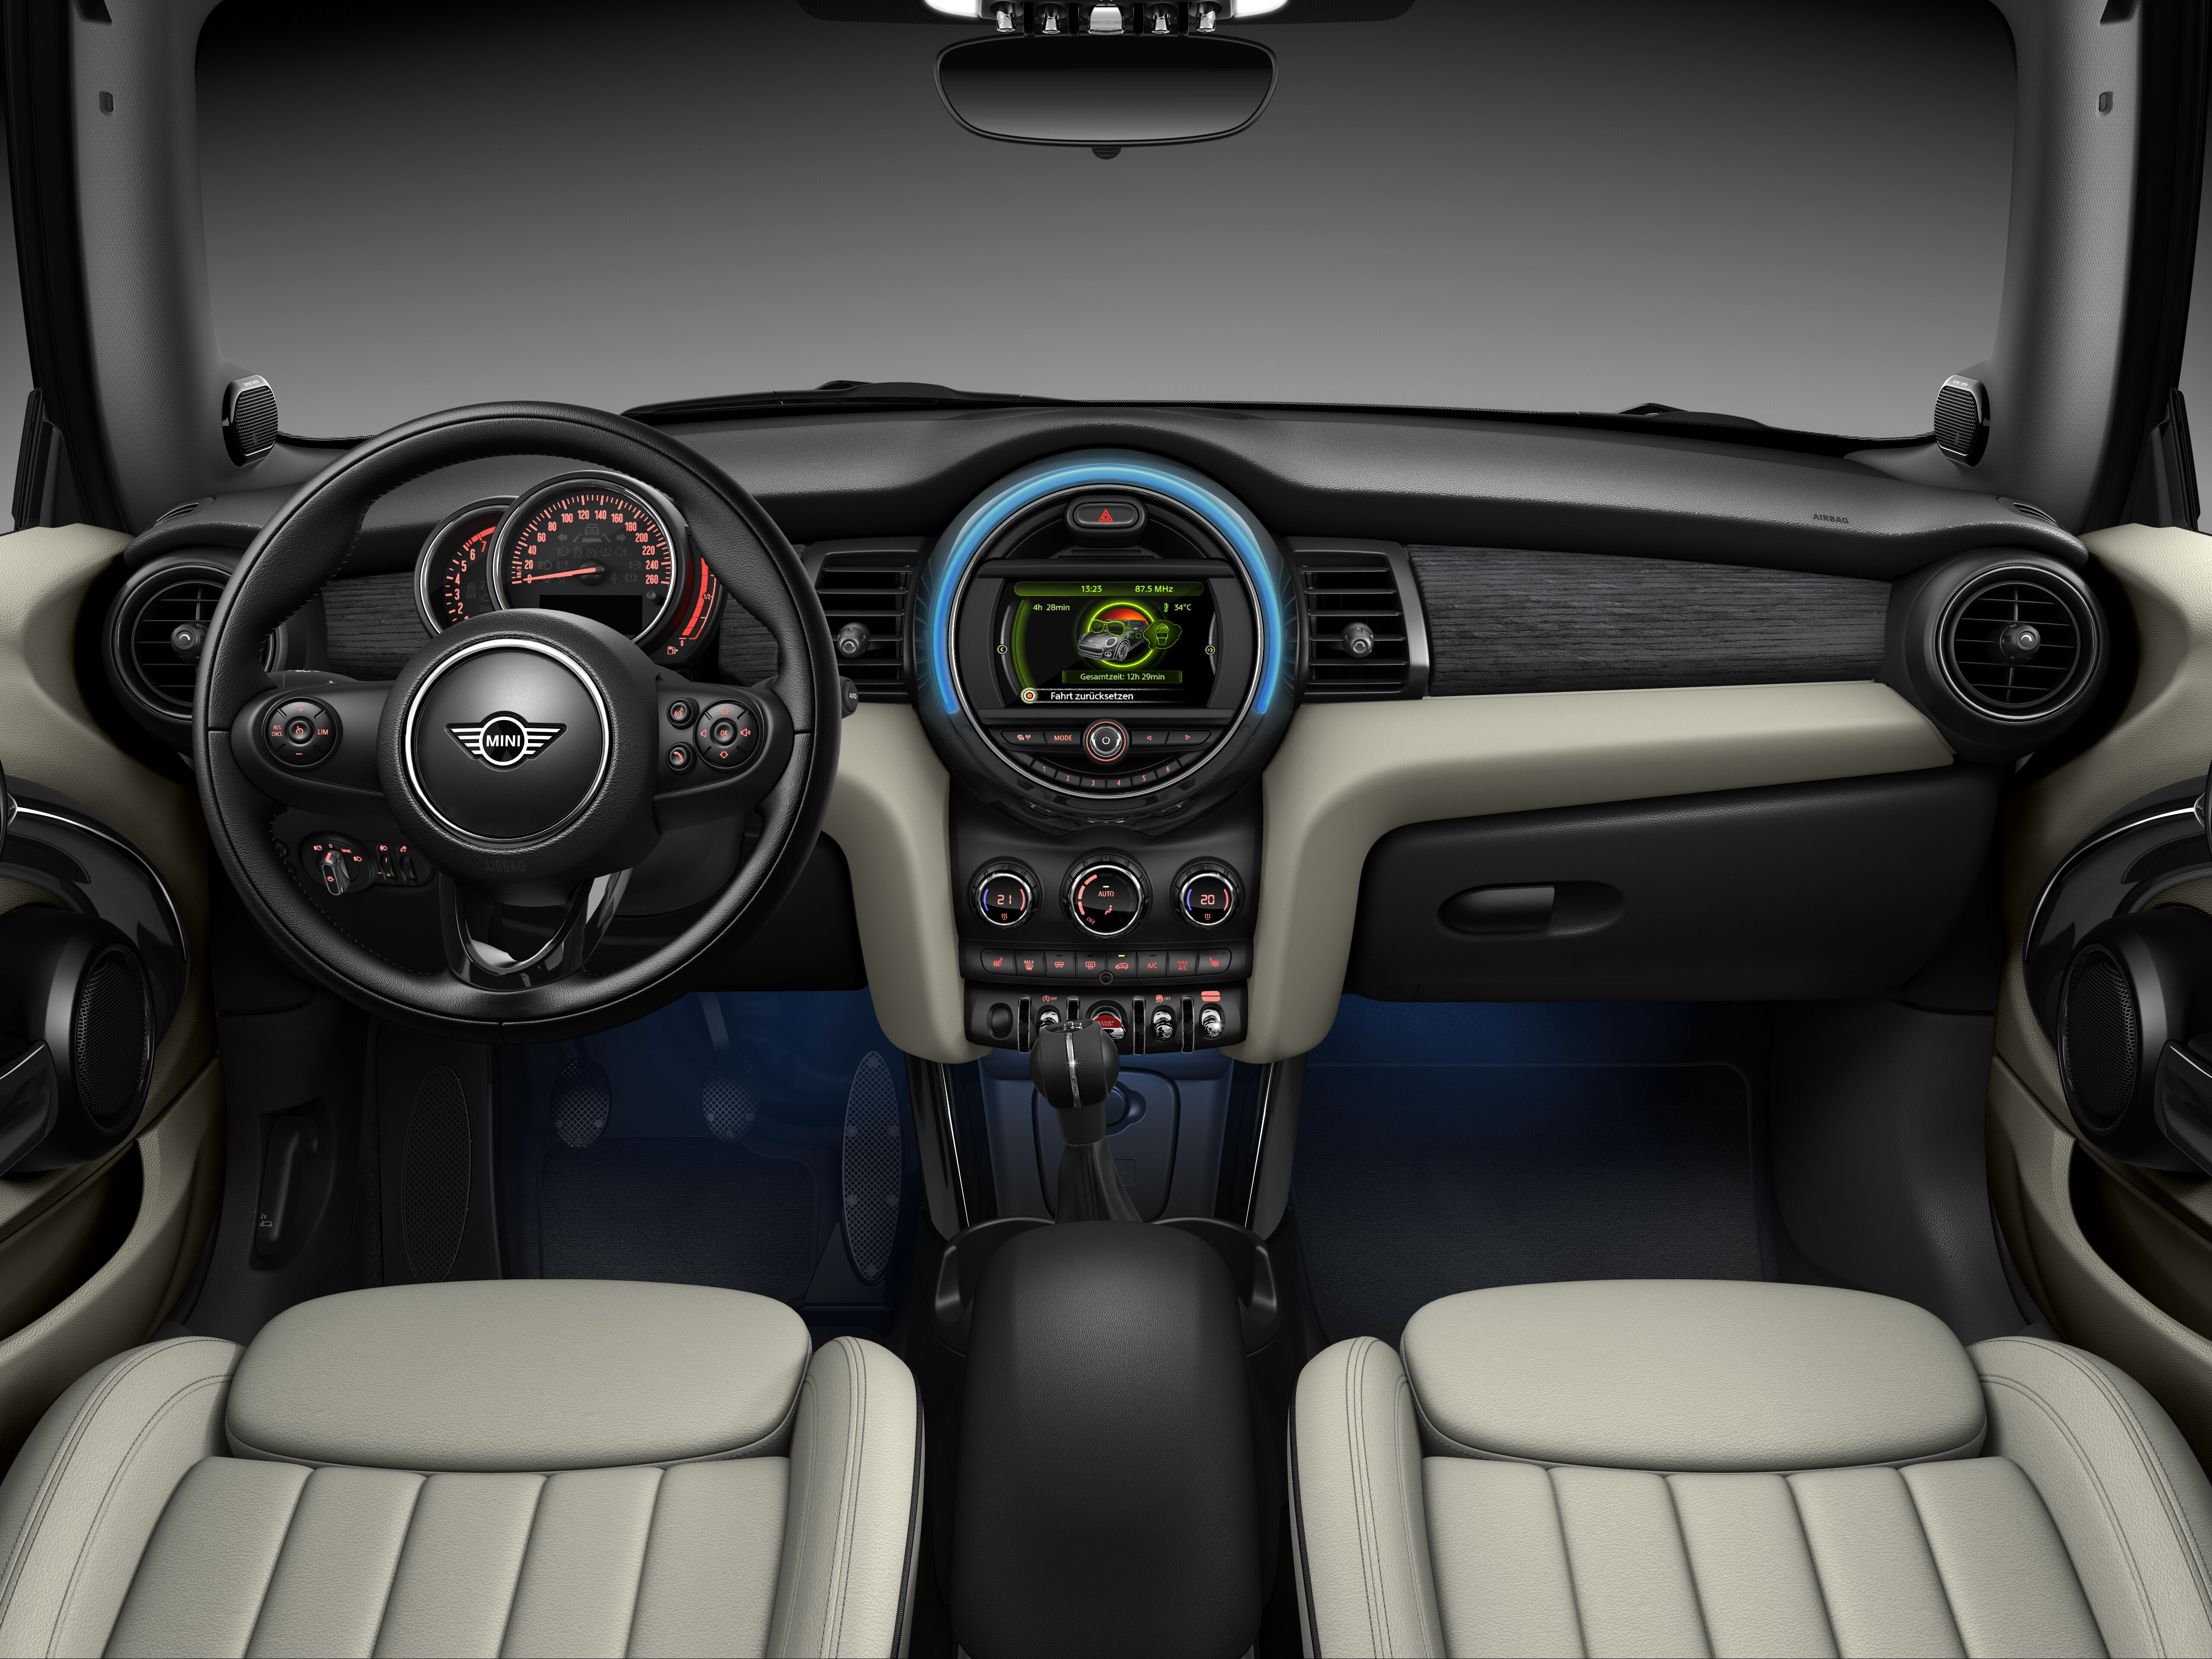 MINI Cooper Convertible front interior dashboard and steering wheel